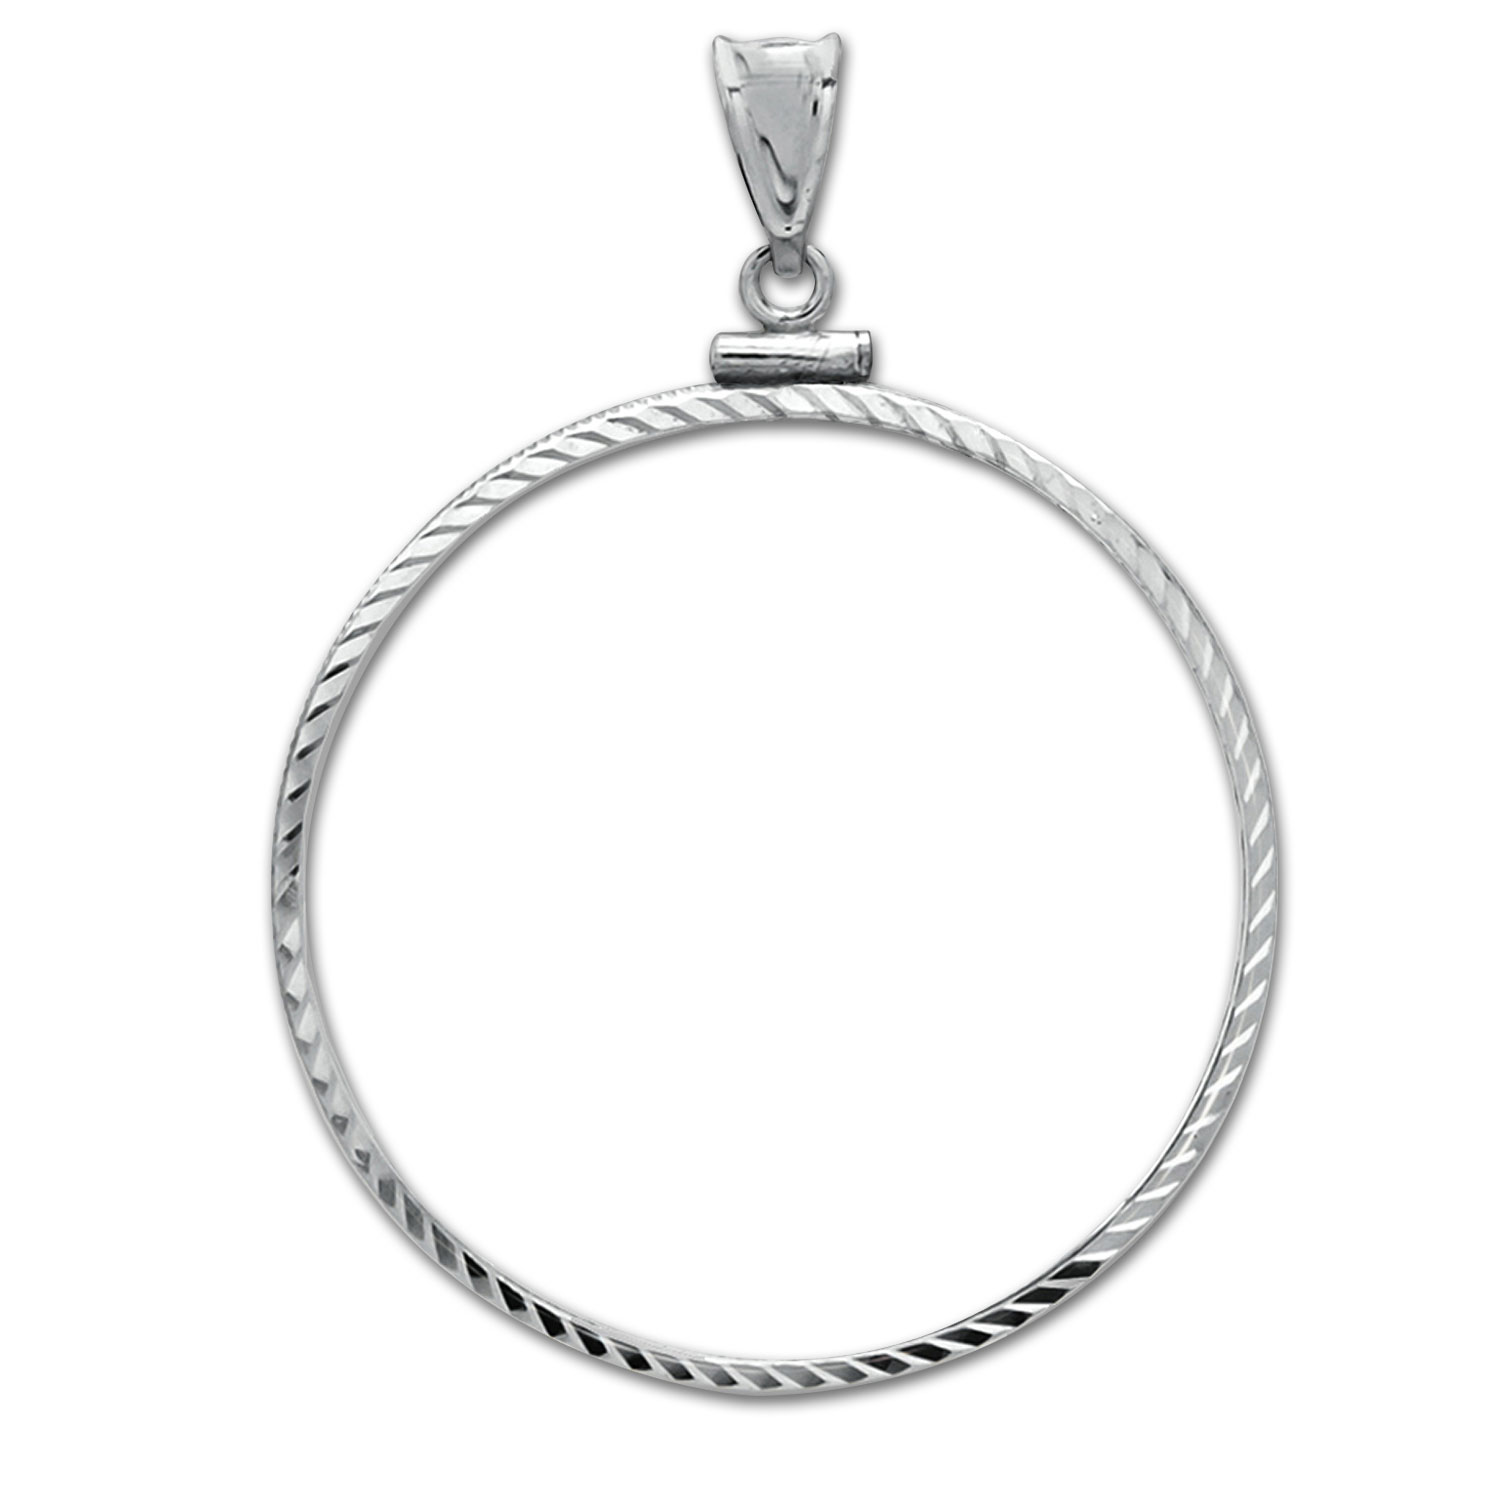 14K White Gold Screw-Top Diamond-Cut Coin Bezel - 22 mm